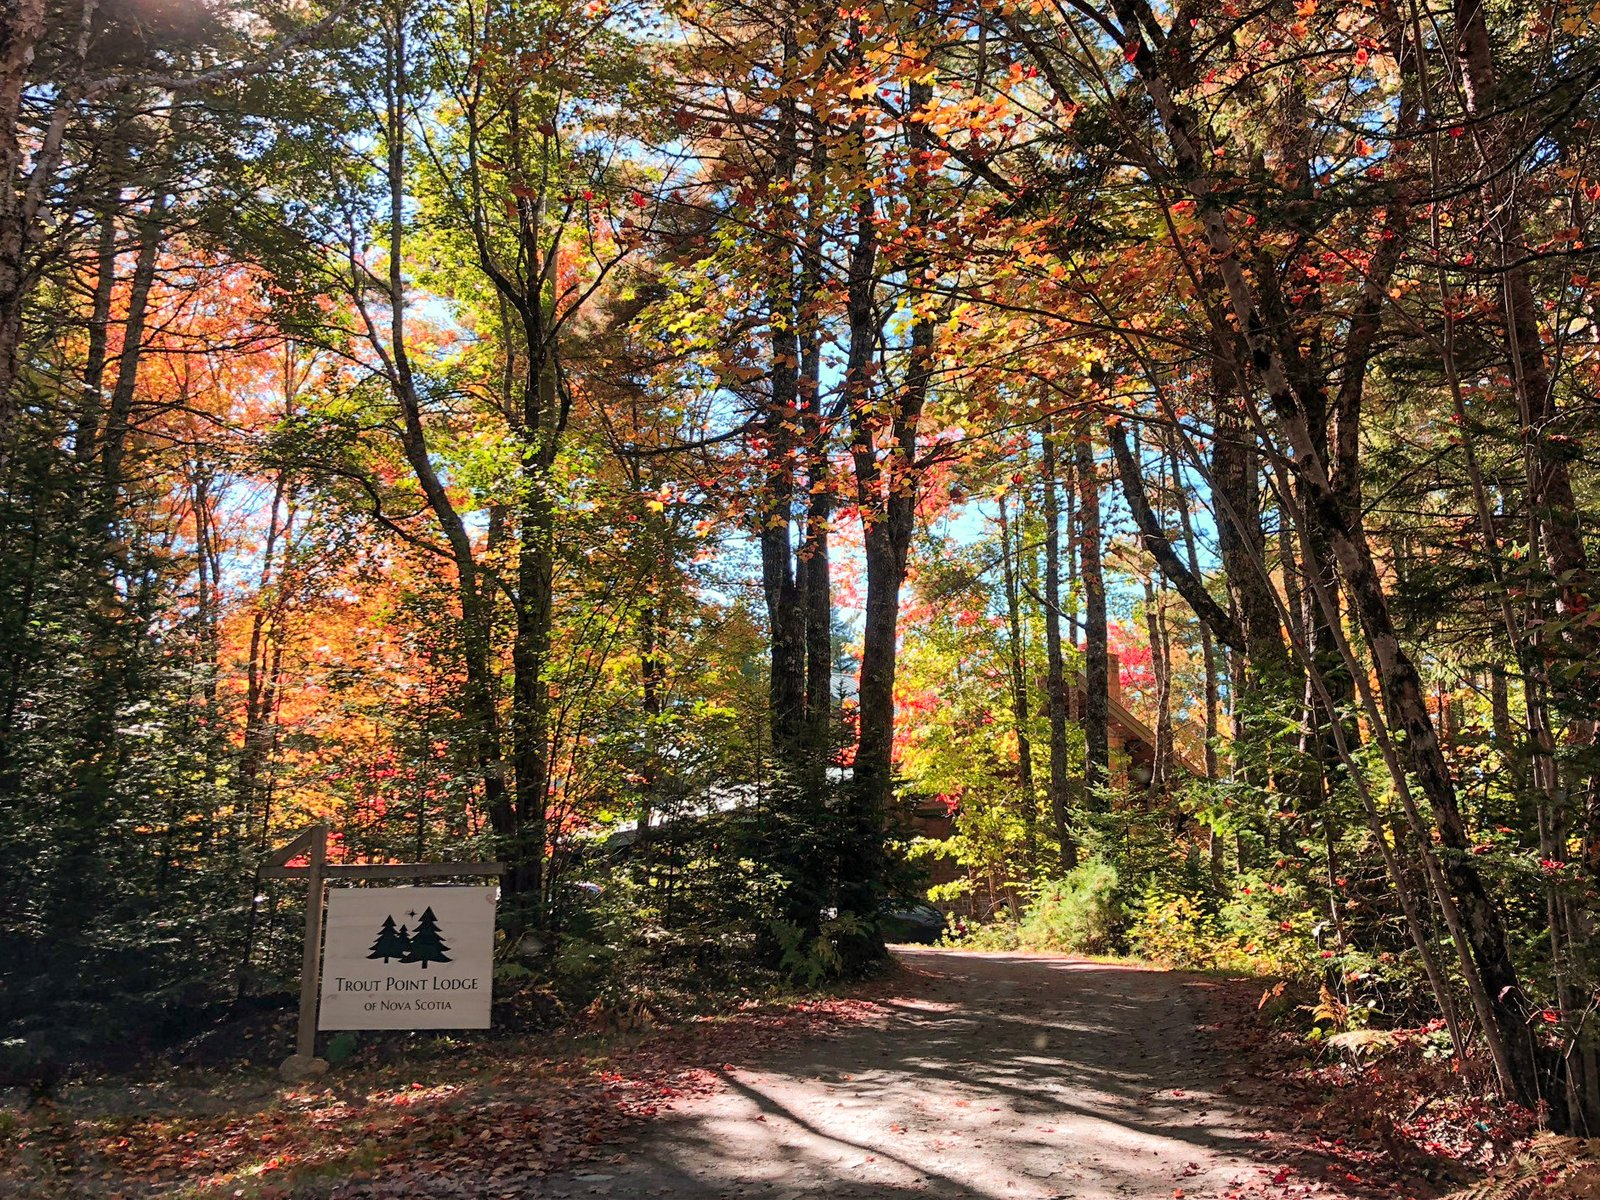 Experiencing fall foliage on a road trip to Trout Point Lodge in Kemptville, Nova Scotia